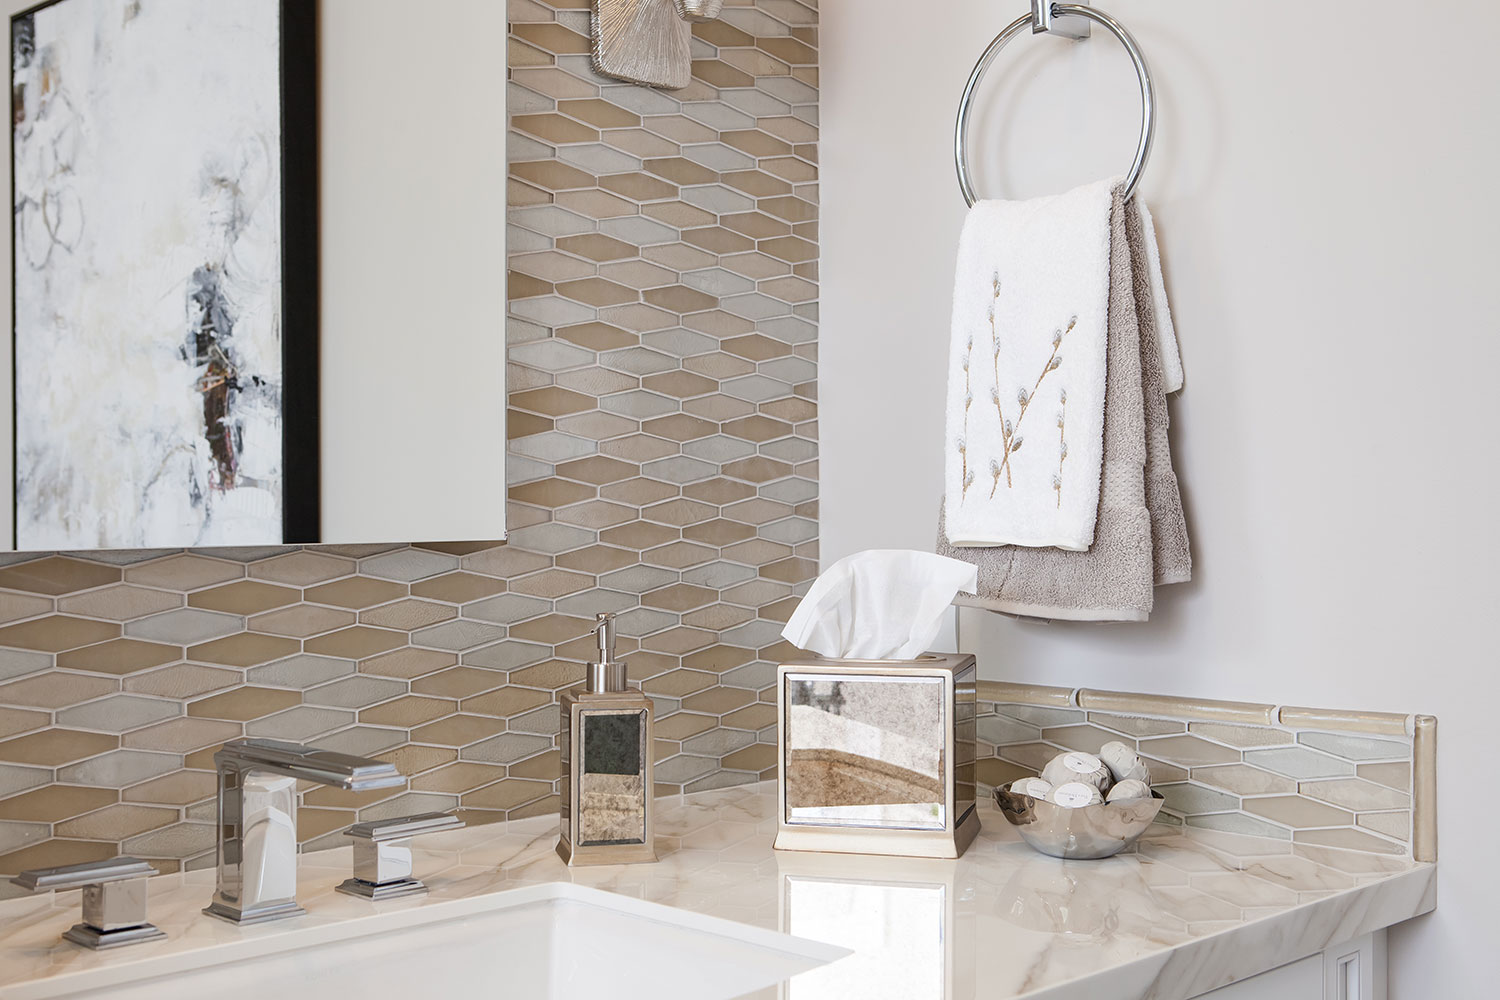 Rectangular Sinks and Faucets